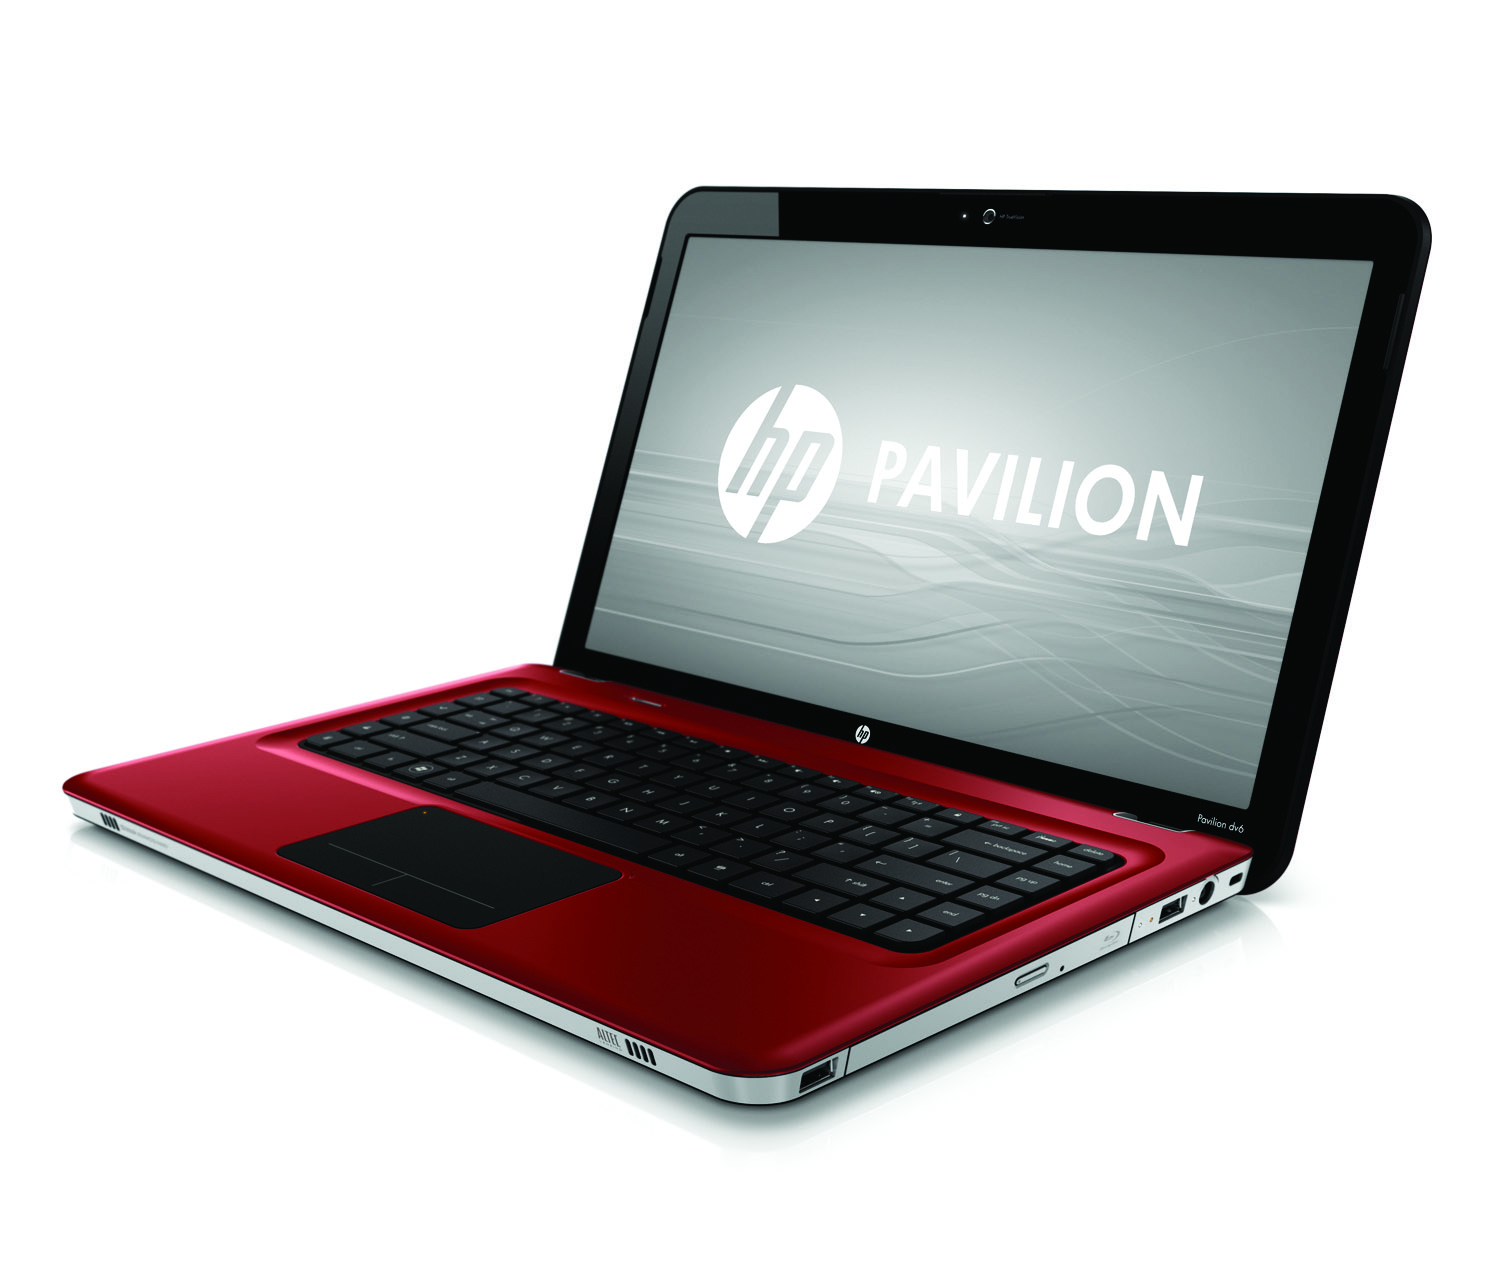 HP Pavilion dv6 Entertainment PC, sonoma red, front left open